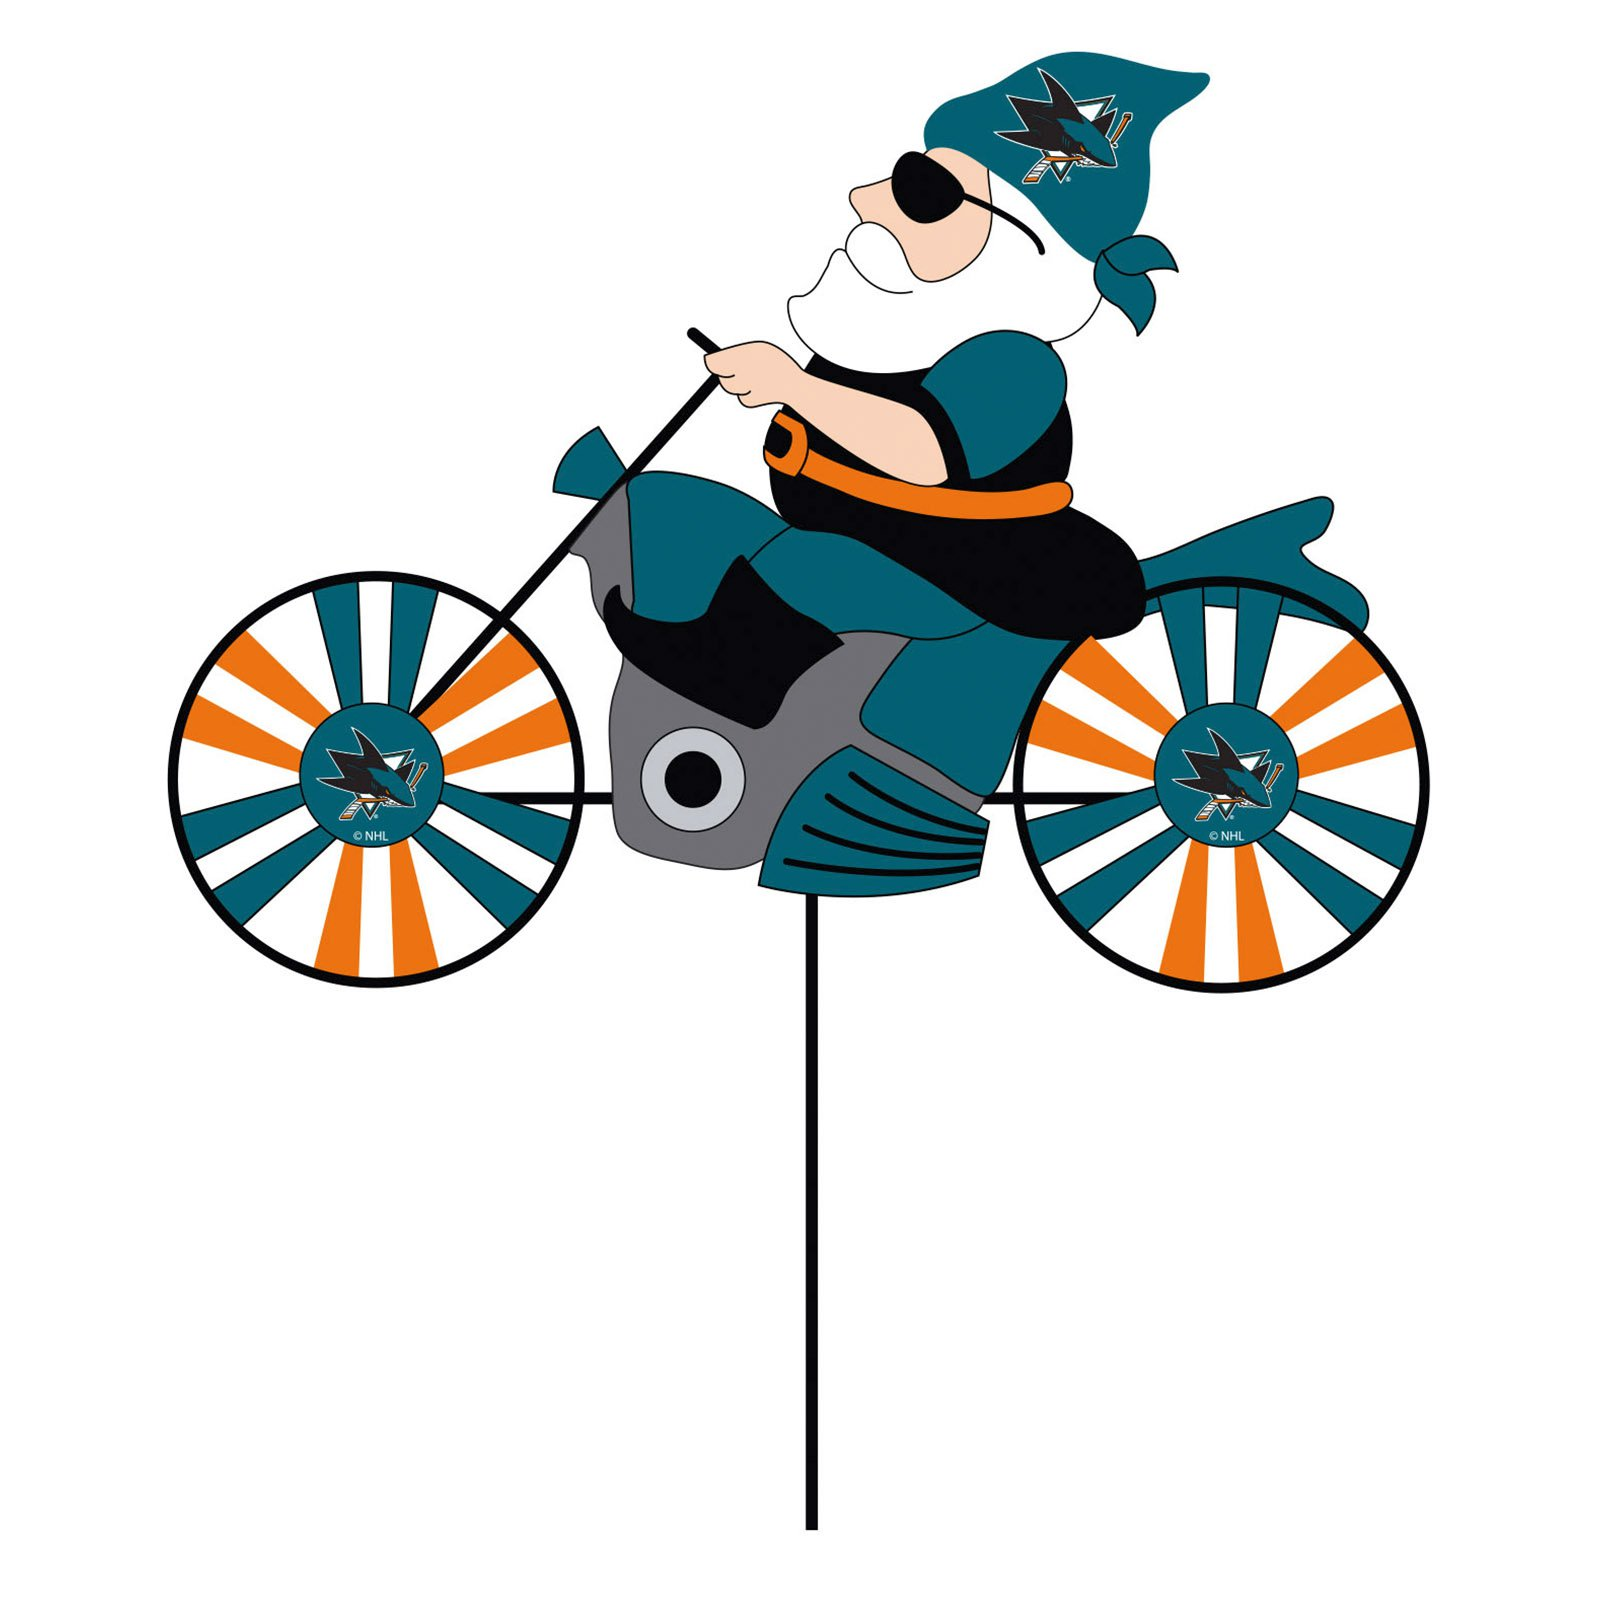 San Jose Sharks Motorcycle Riding Garden Gnome Wind Spinner